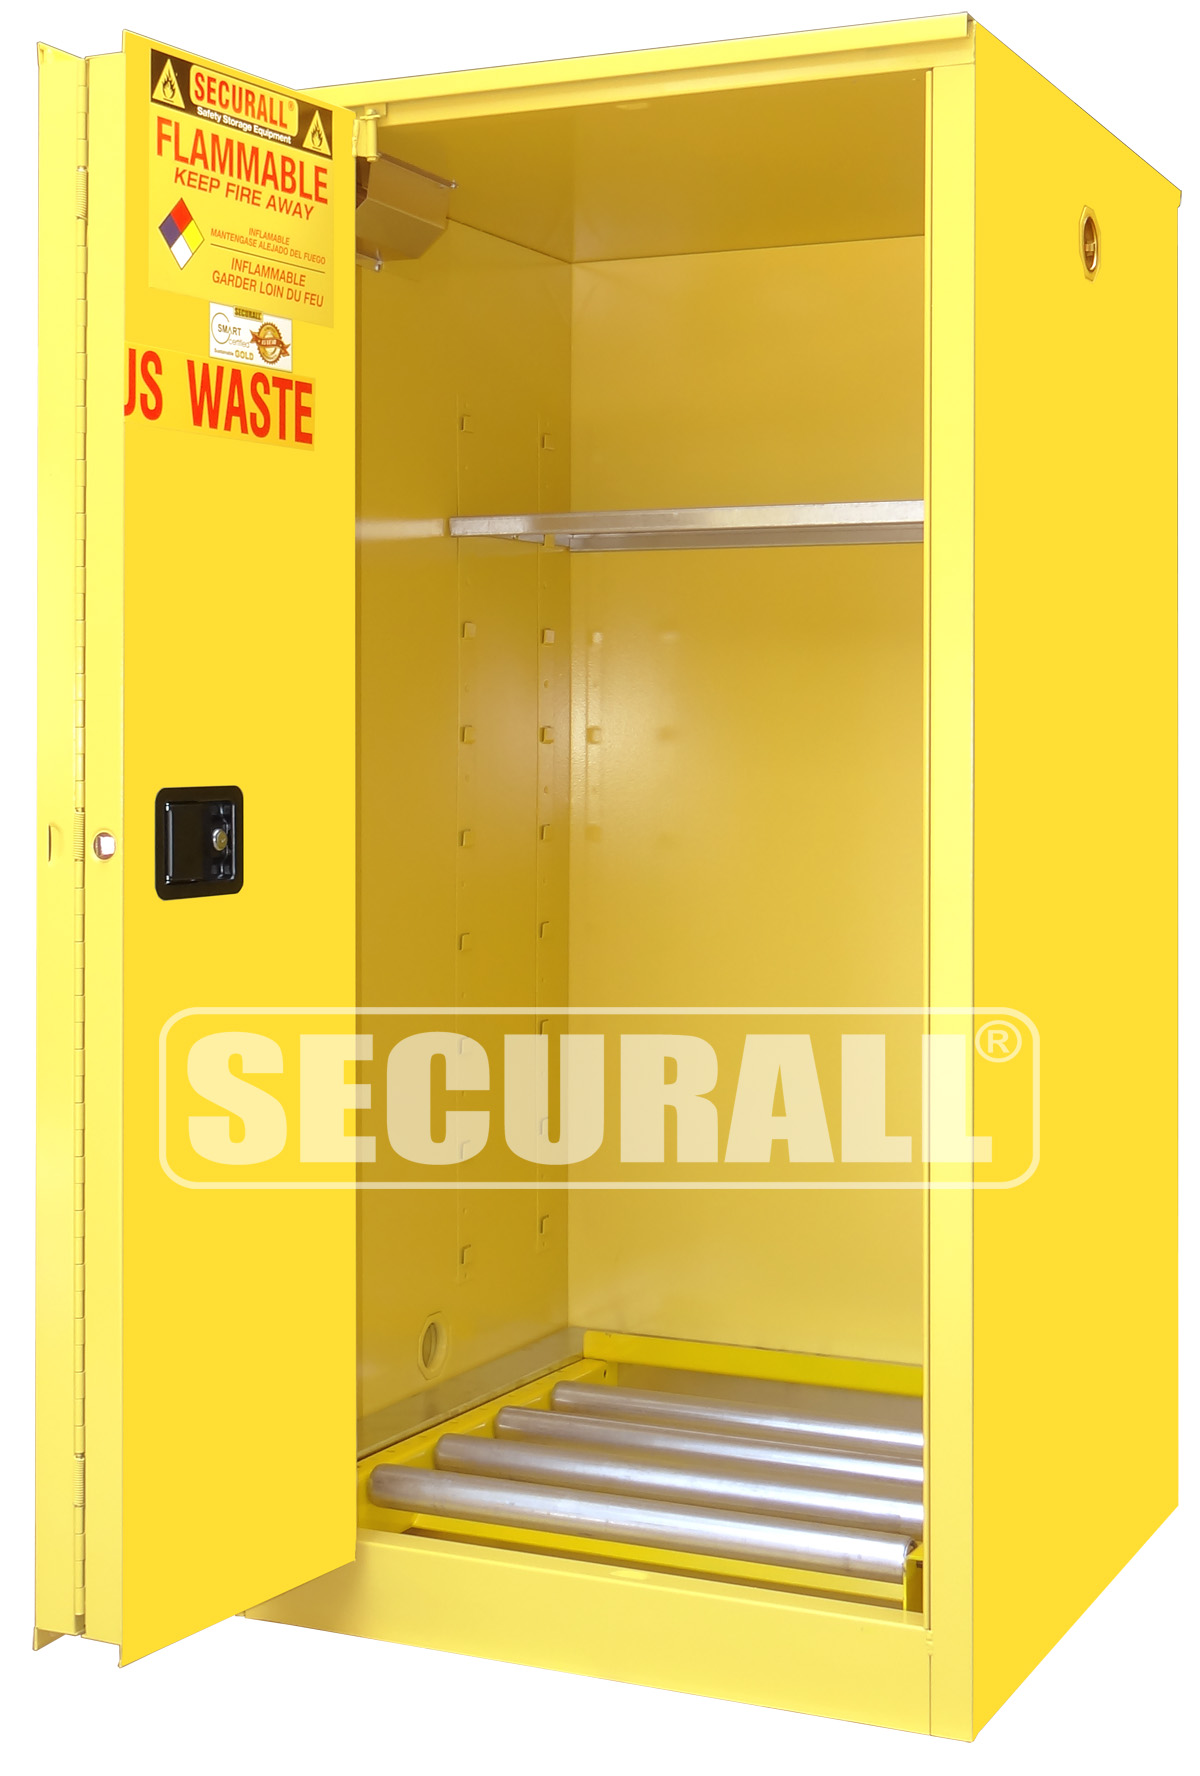 Arco Hazardous Substance Storage Cabinet Digitalstudiosweb Com